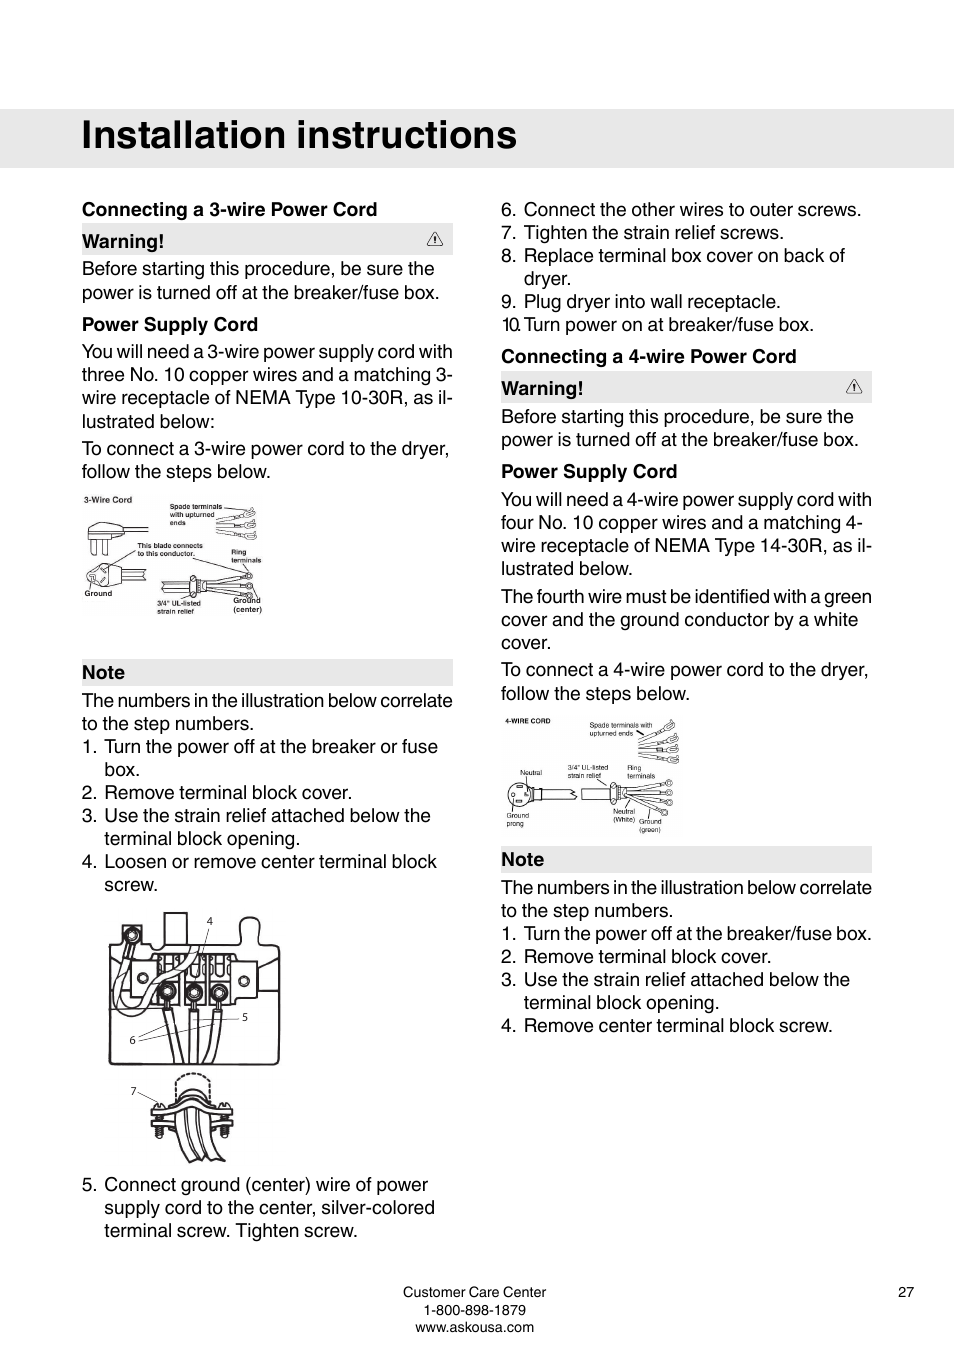 Connecting A 3 Wire Power Cord Supply 4 Ul Fuse Box Asko T793c User Manual Page 27 32